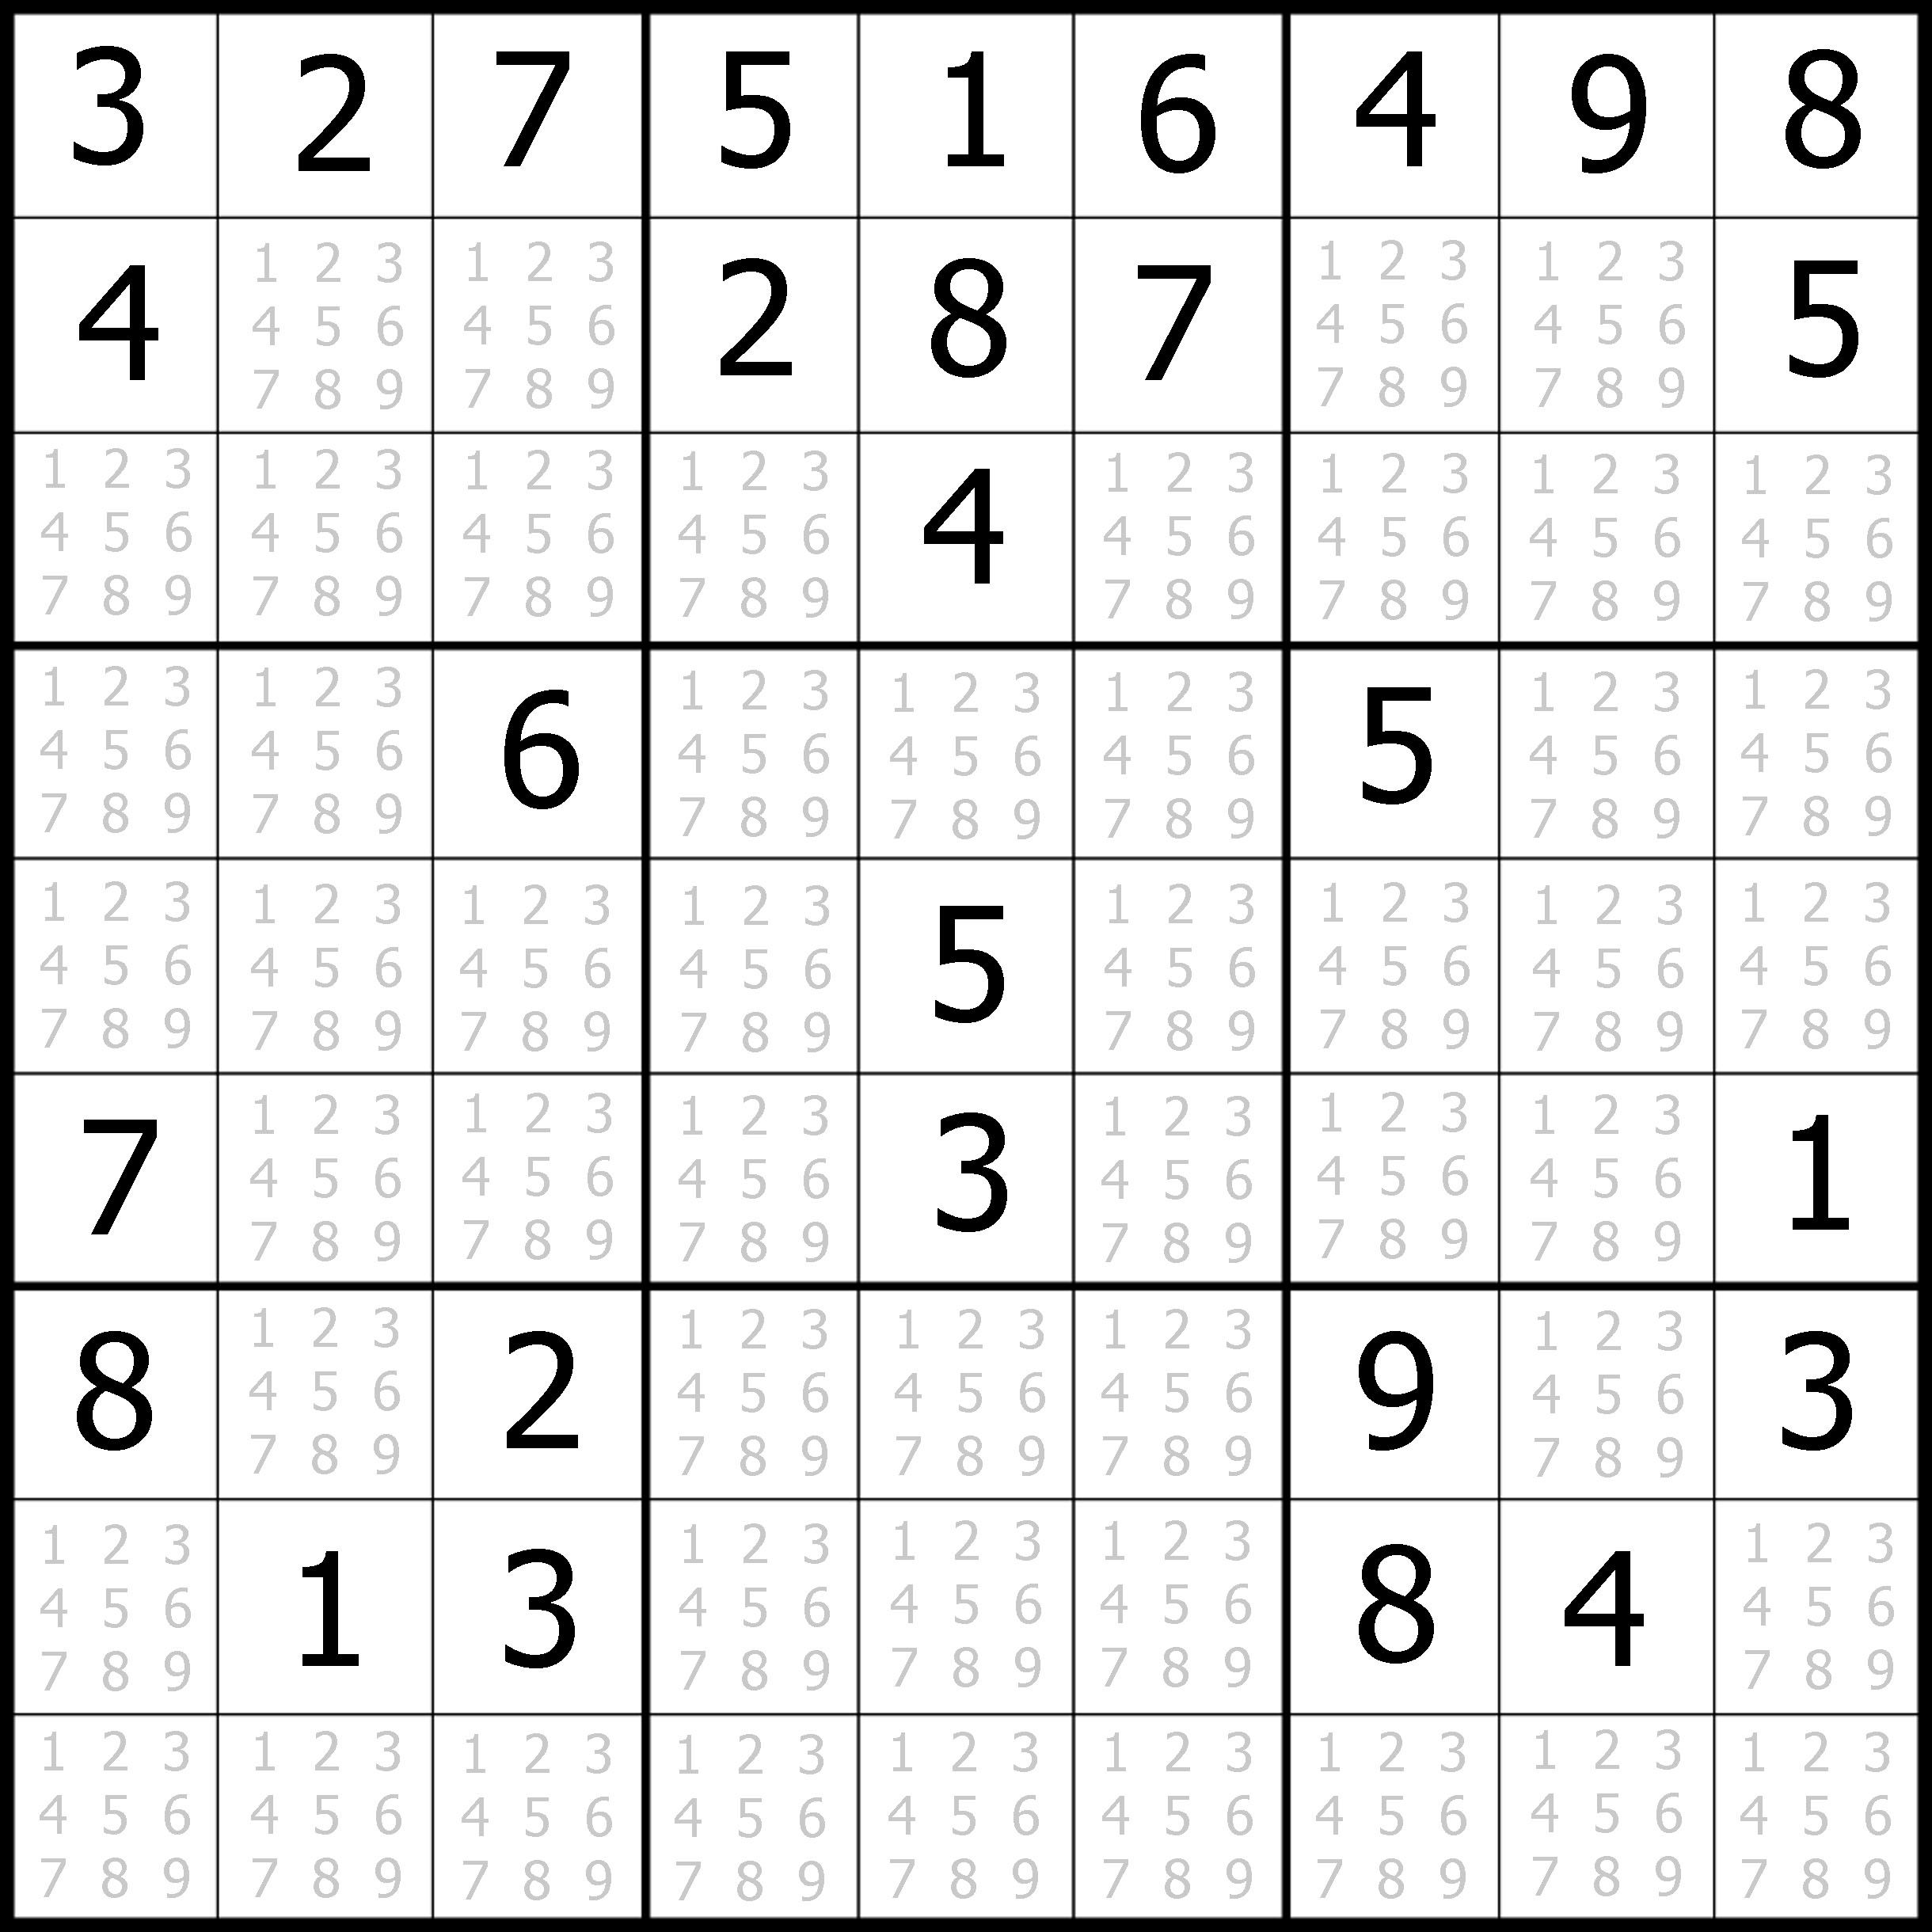 photograph about Medium Sudoku Printable titled sudoku printable no cost, medium, printable sudoku puzzle #1